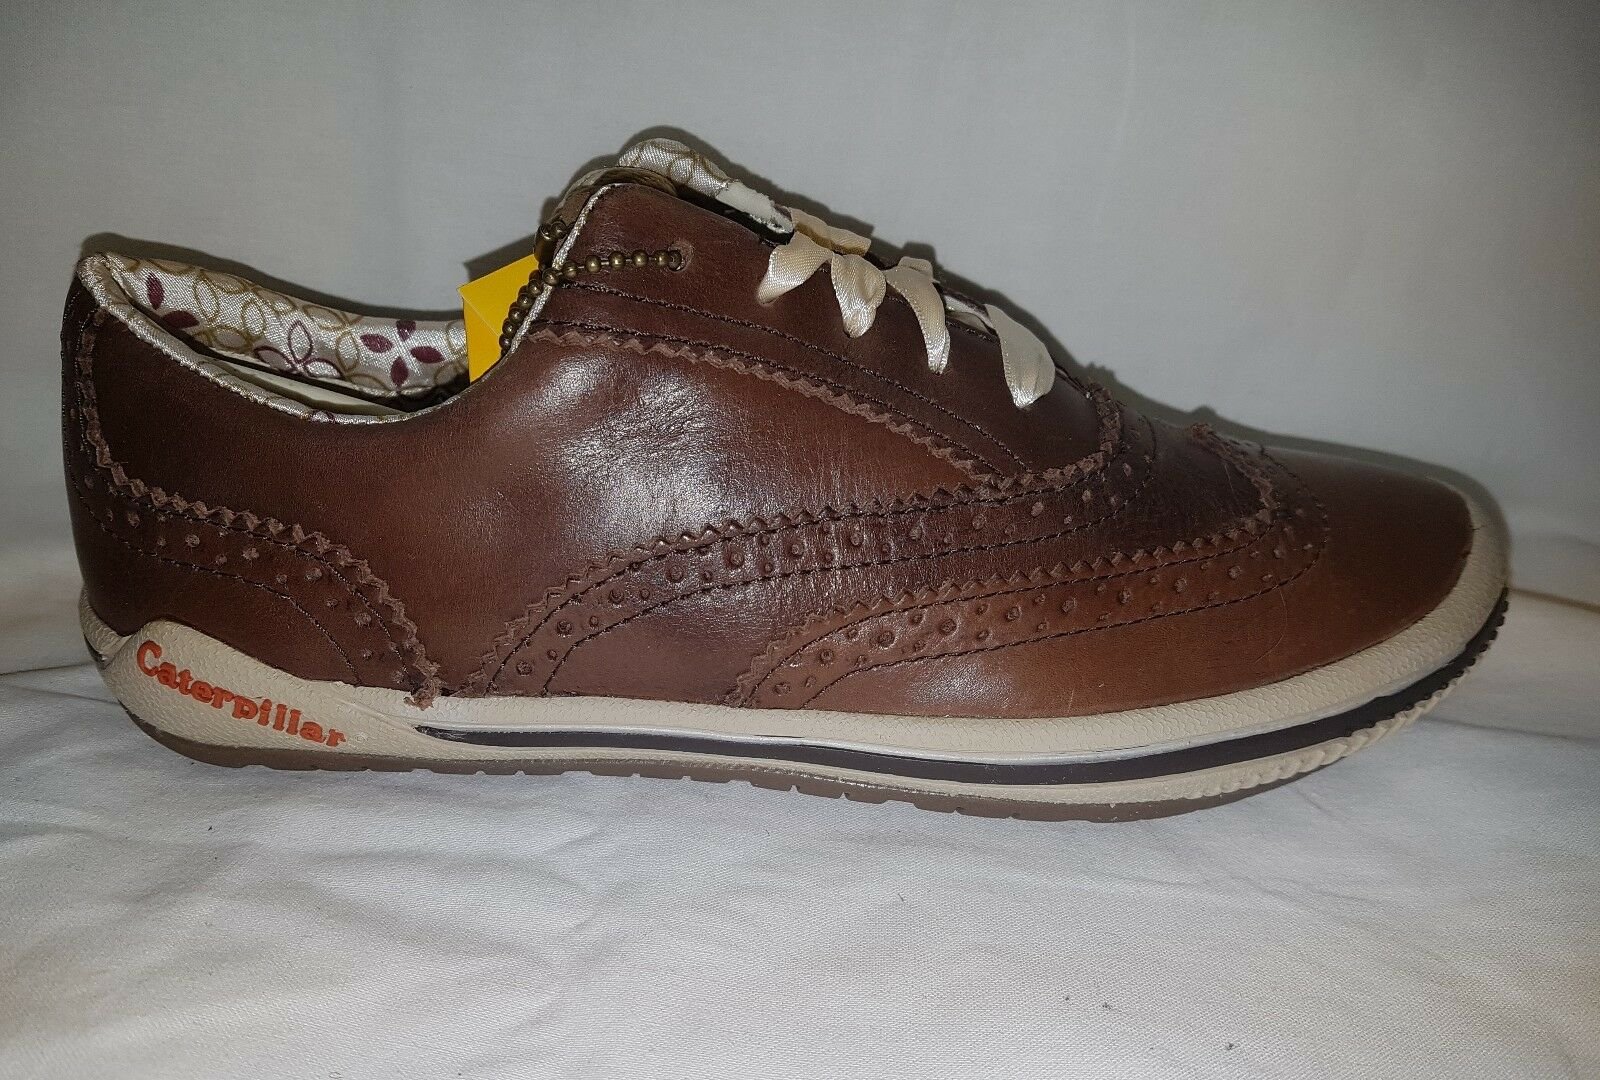 Ladies Womens Caterpillar Shone Shoes Oxford Brown Trainers  Shoes Shone 4 5 6 7 8 bc8760